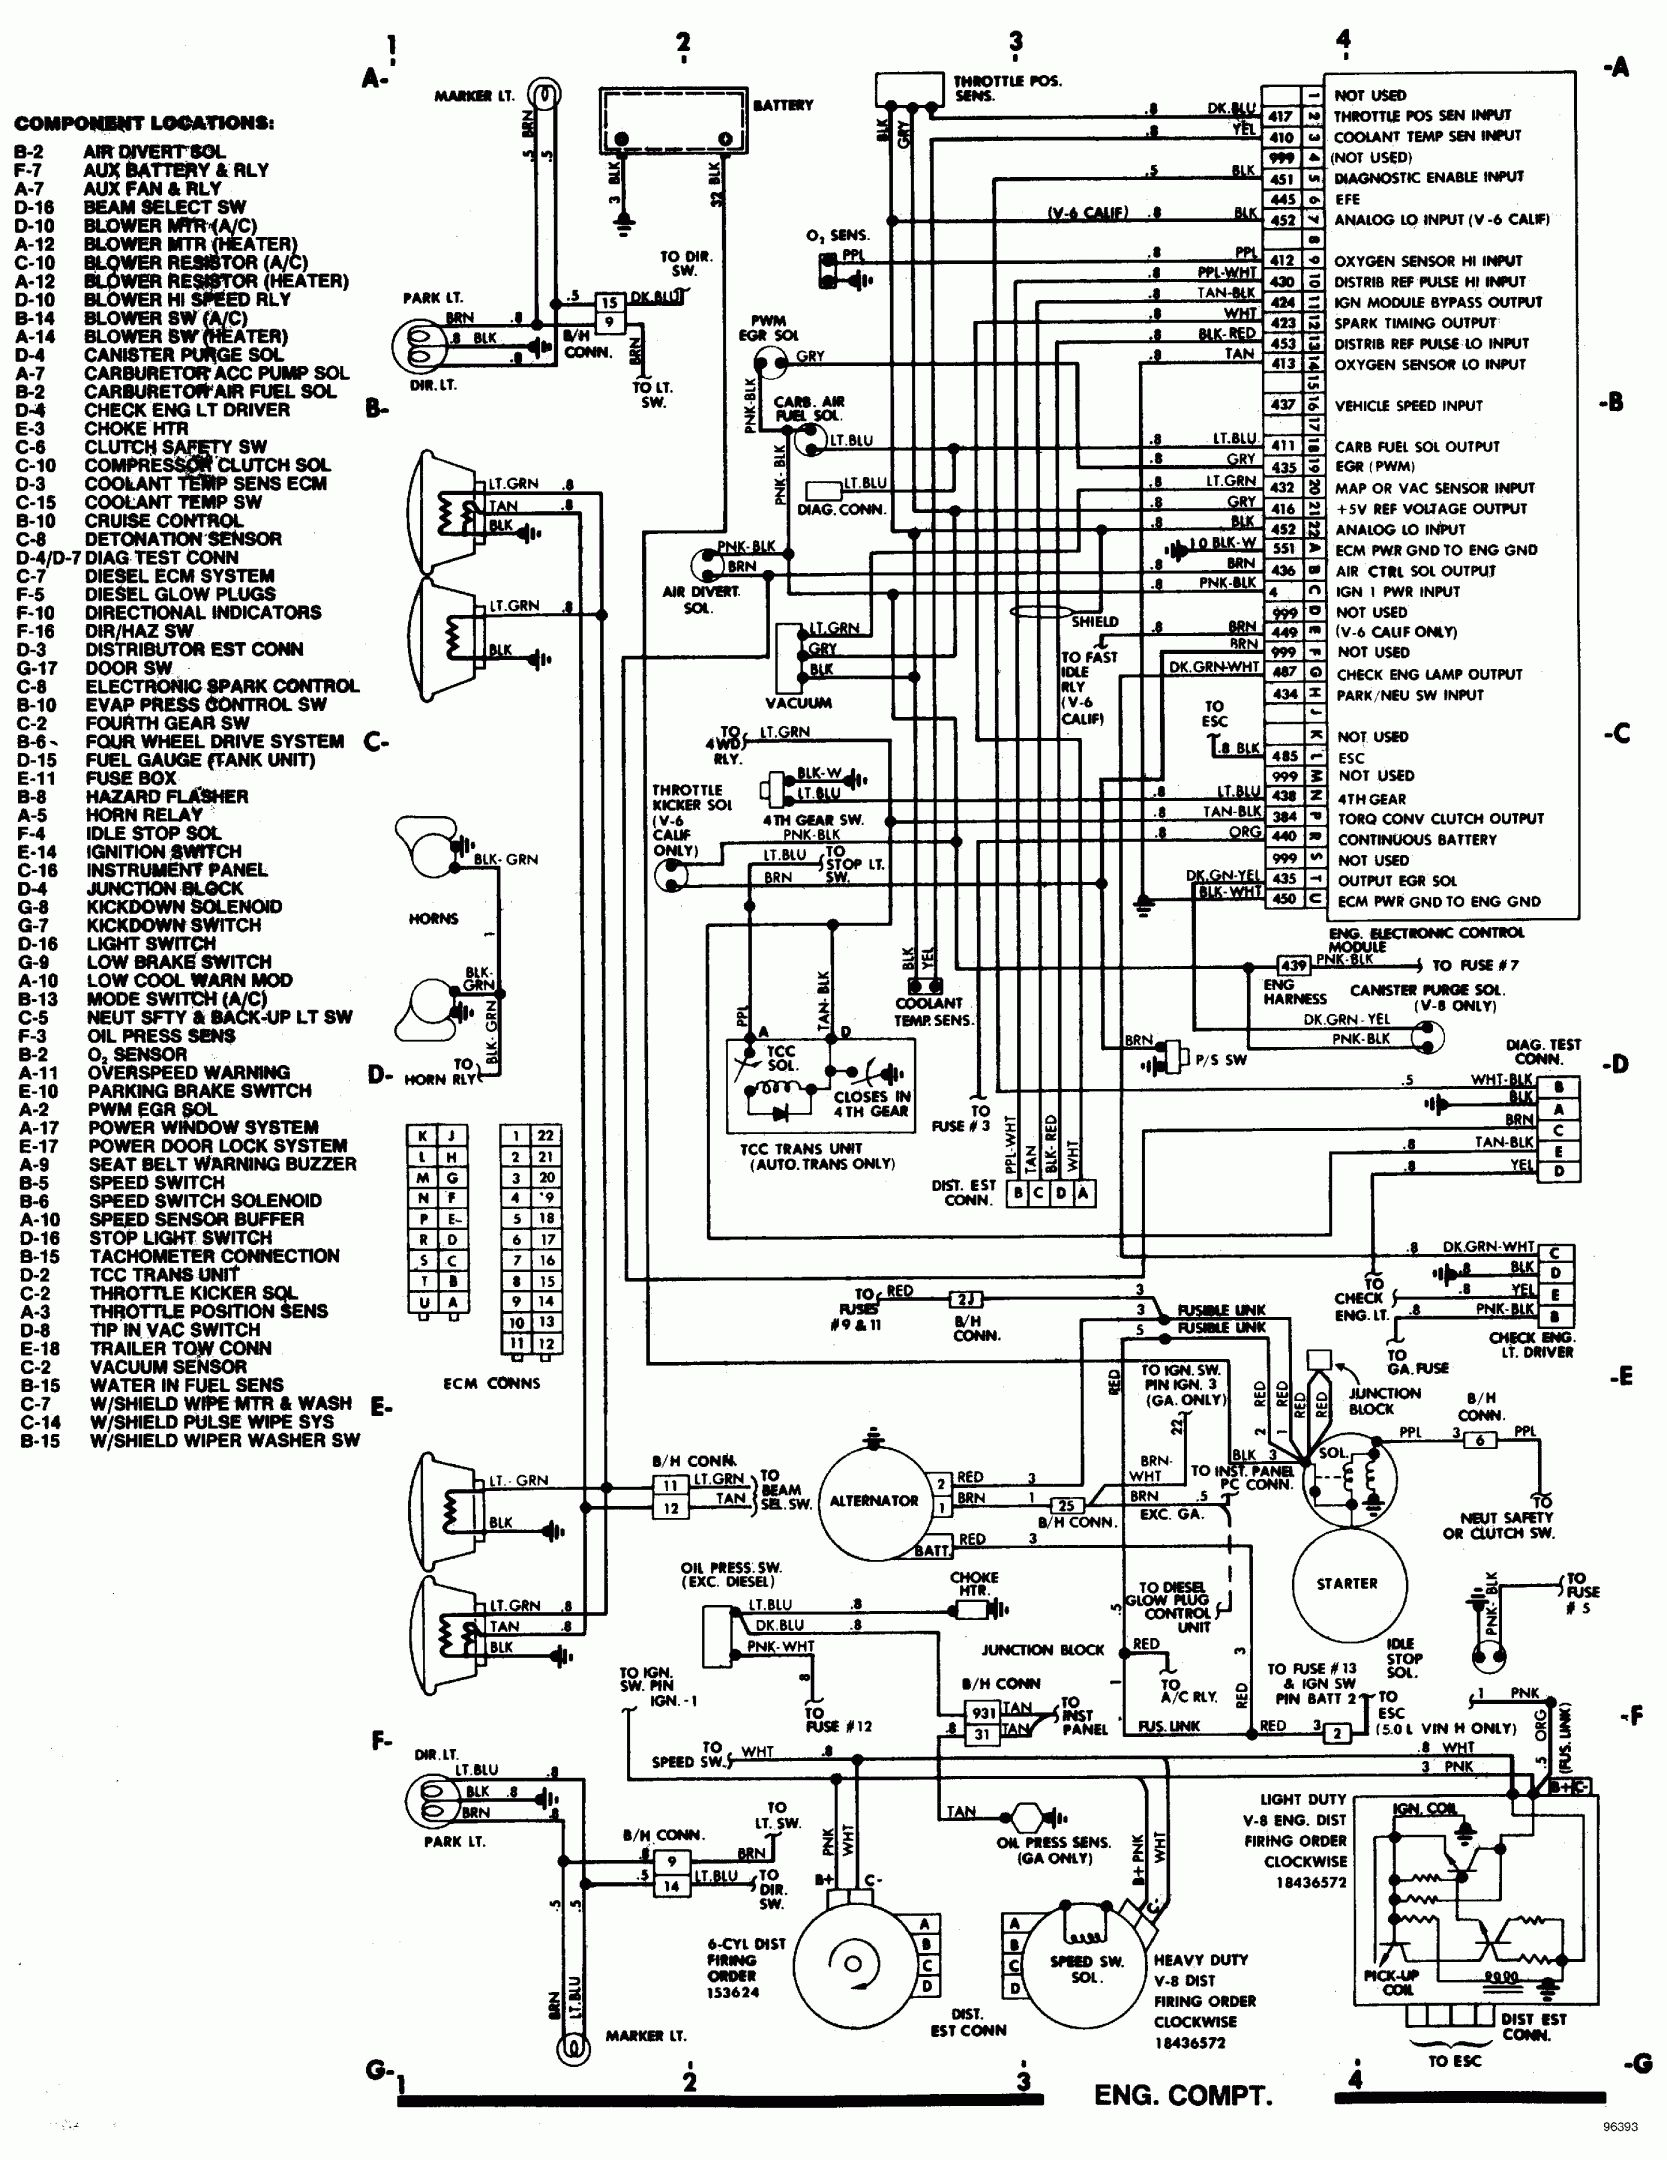 16 Dodge Truck Wiring Diagram